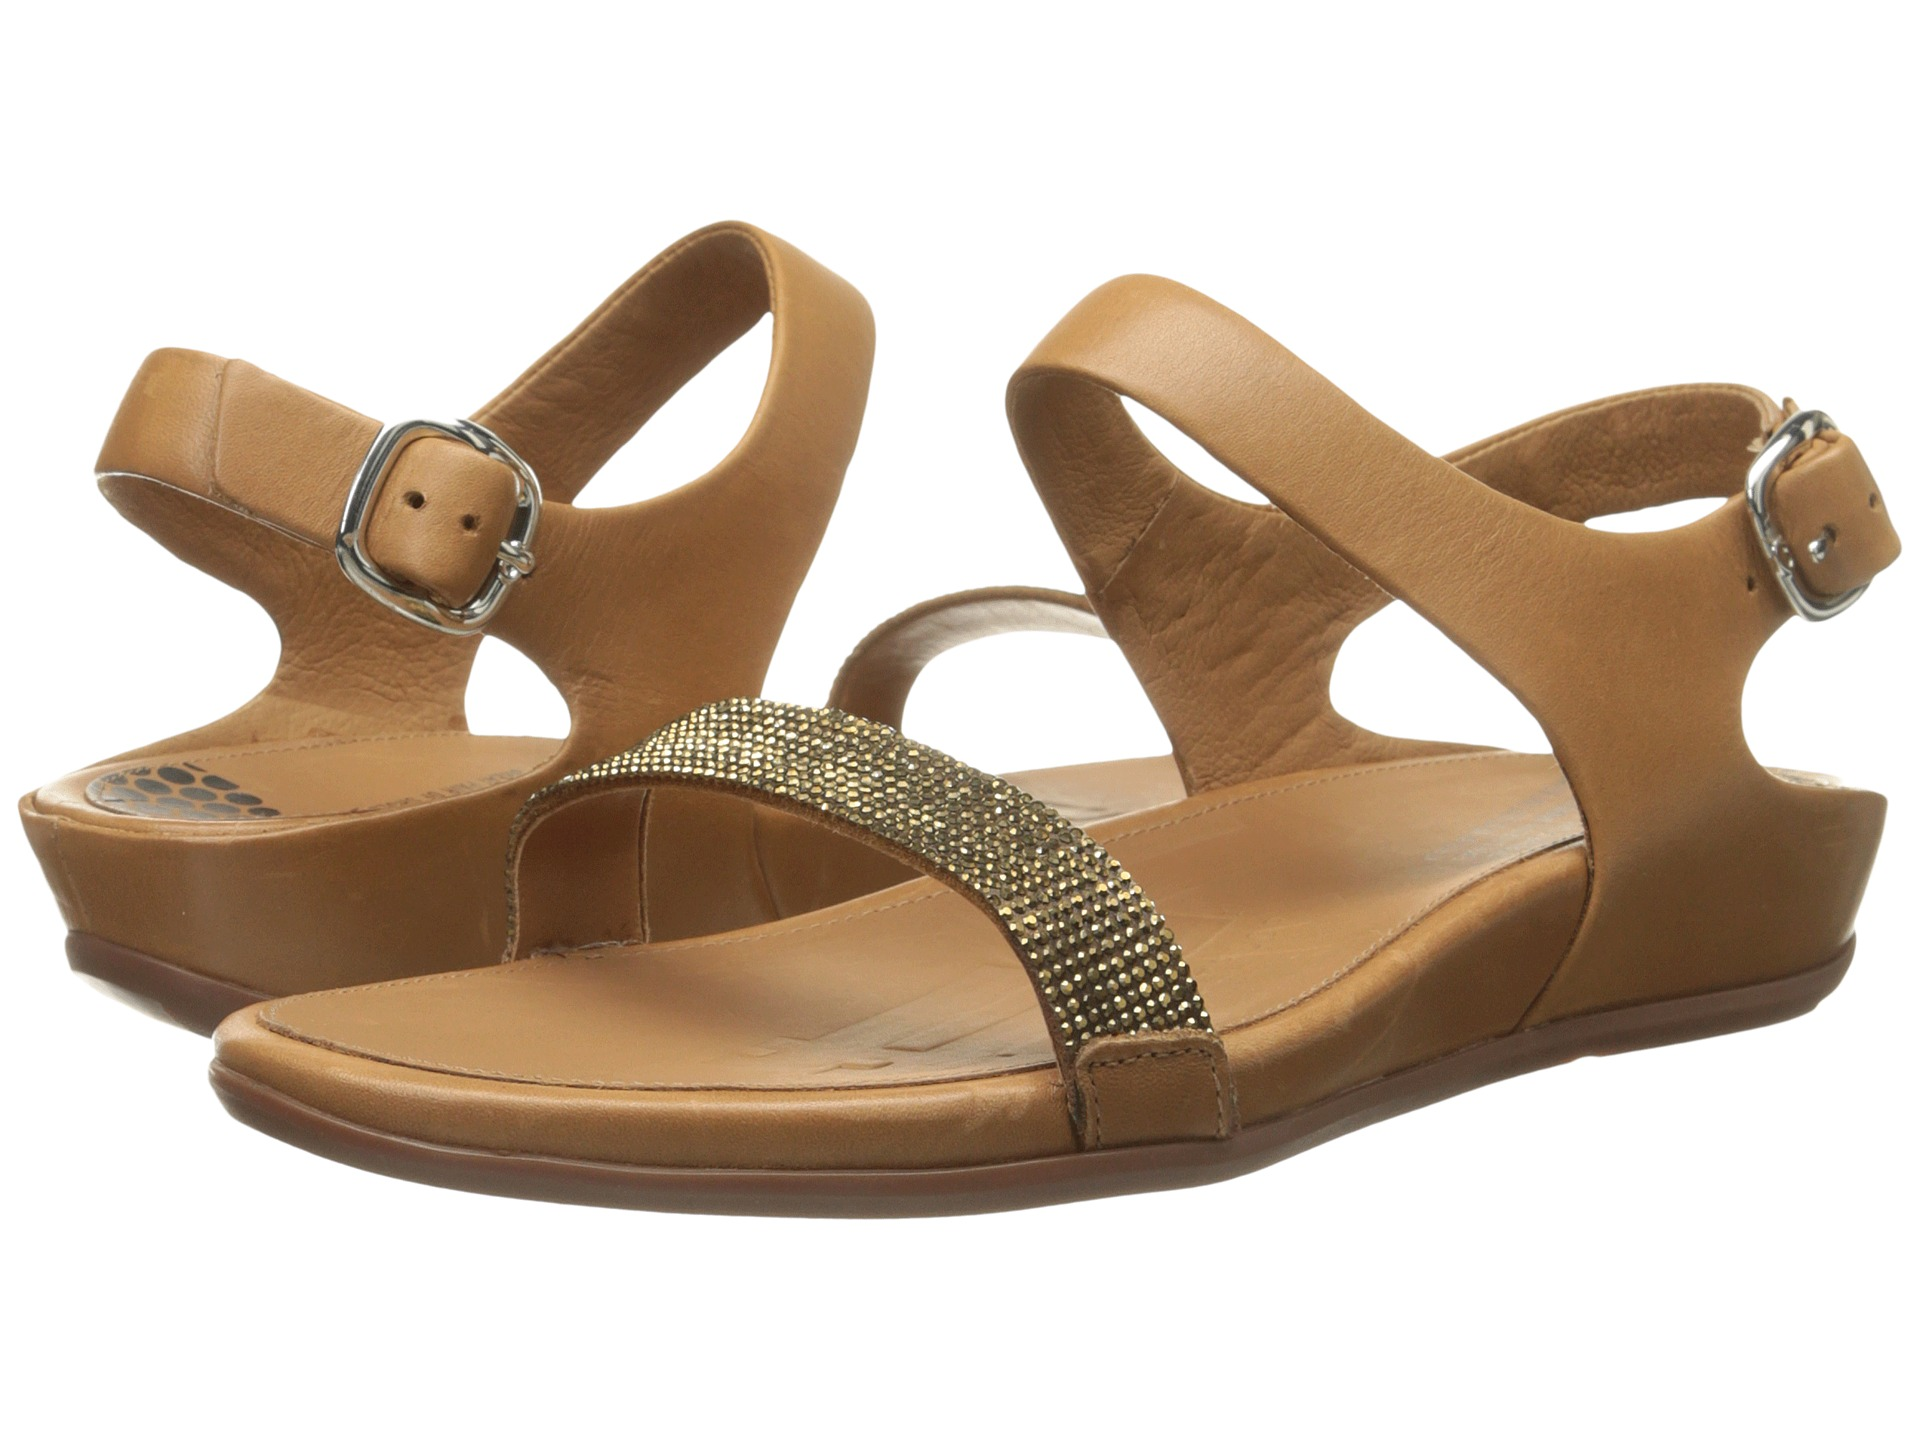 FitFlop is the result of a beauty industry pro combining forces with biomechanists to create the most comfortable yet chic sandals around. Made from triple-density Microwobbleboard™ material and showcased in a wide variety of styles, you'll feel an immediate difference when you wear FitFlops.